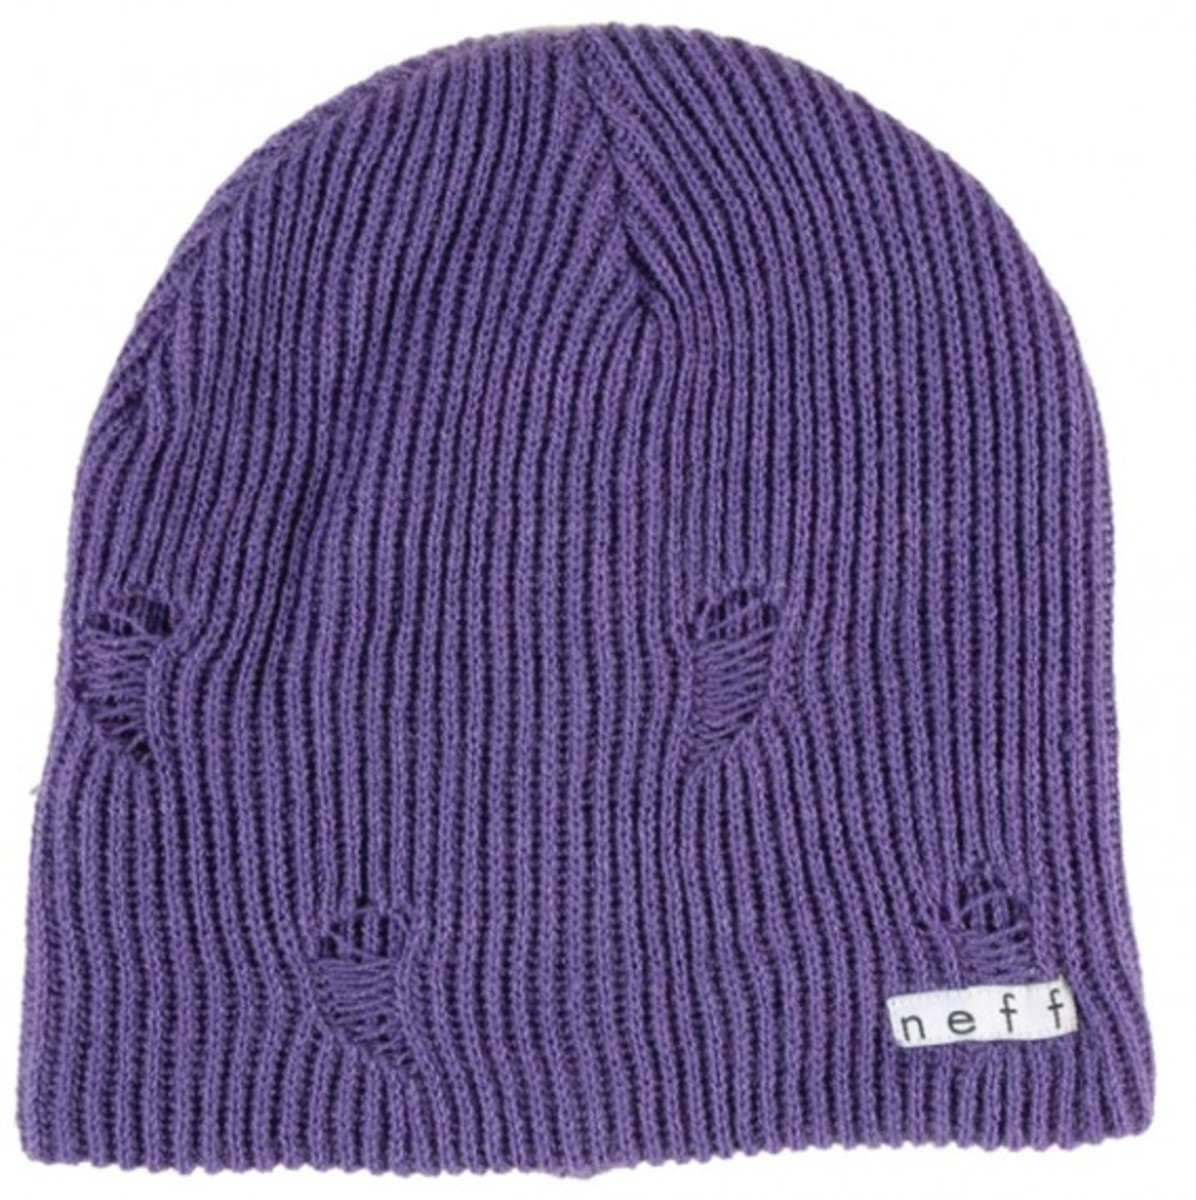 Neff x Steve Aoki - Neff DIM MAK Headwear Collection - Knit Beanie (Purple)